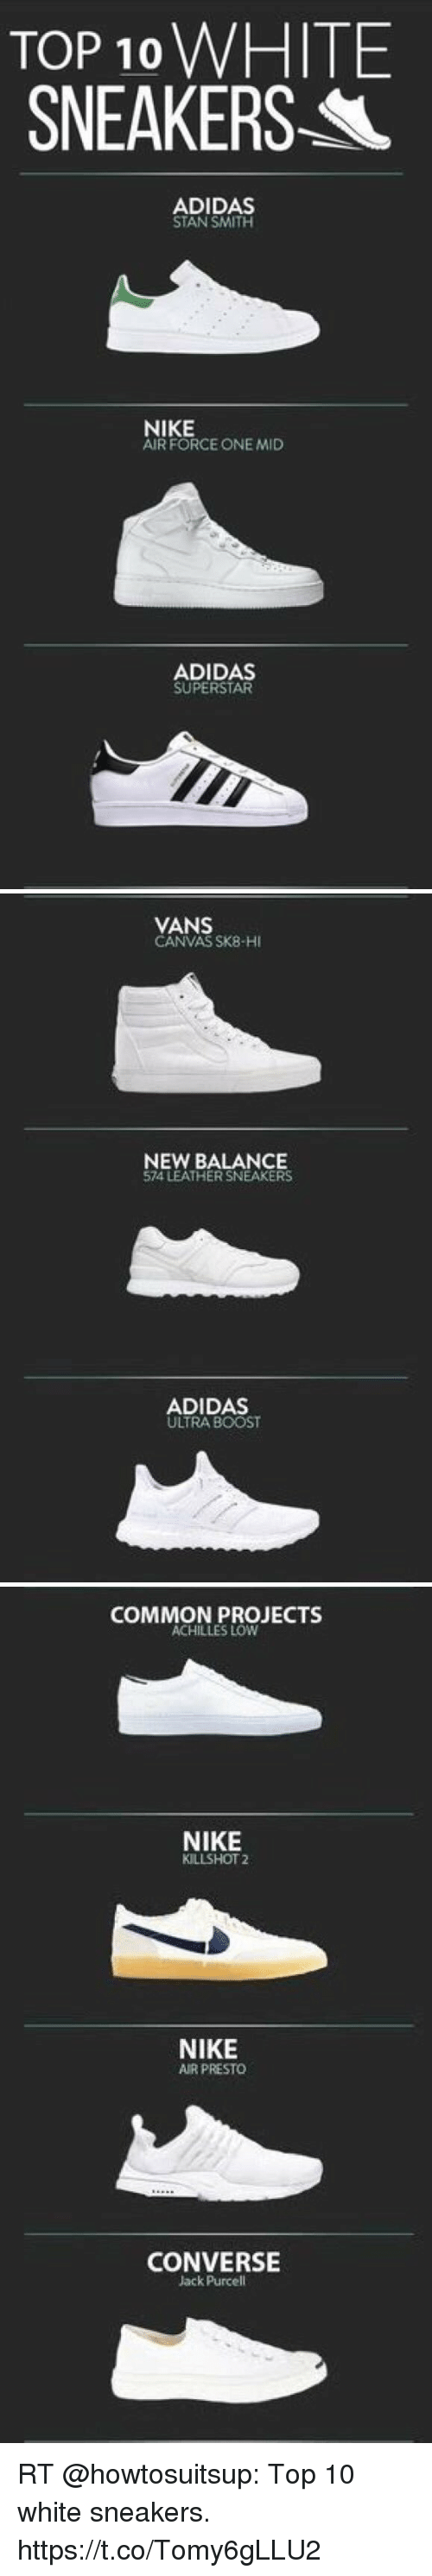 6204ffa09b9d TOP 10 WHITE SNEAKERS- L ADIDAS STAN SMITH NIKE AIR FORCE ONE MID ...